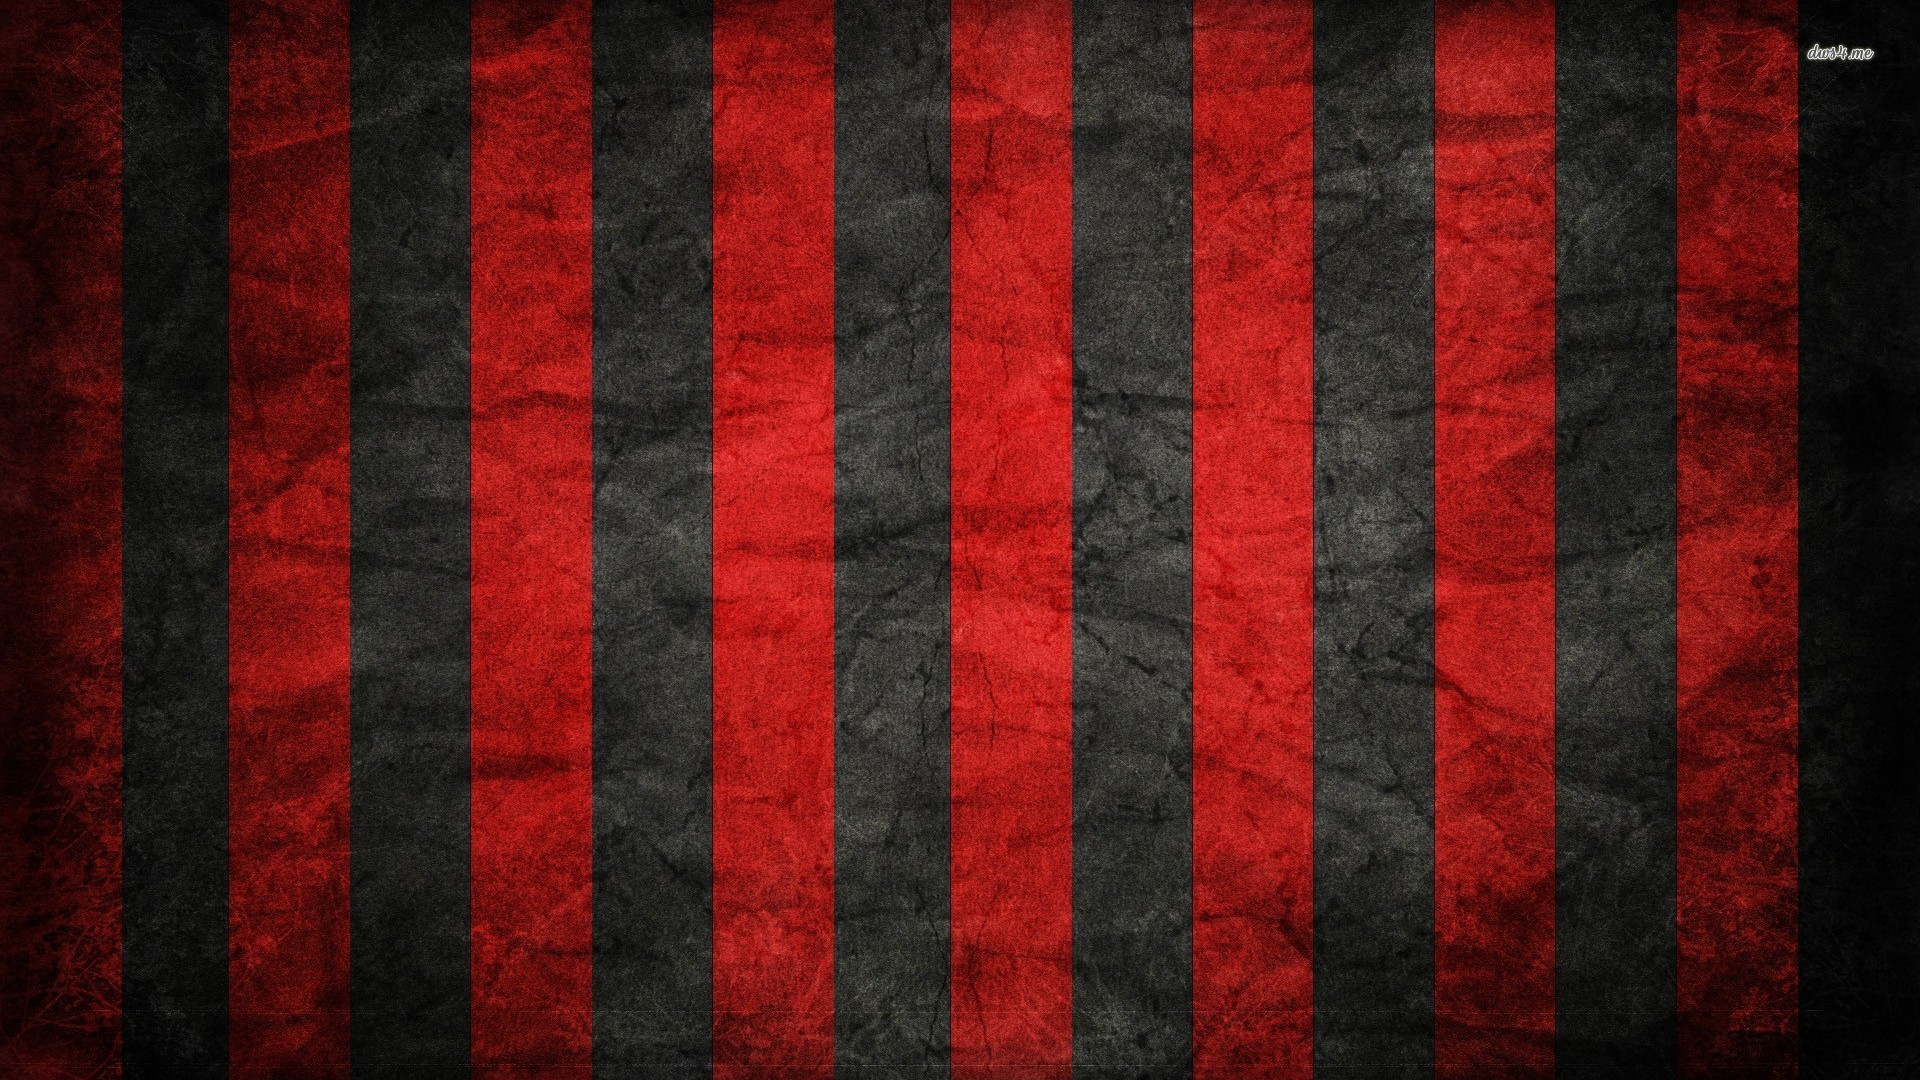 Red Black Background 1 Download Free Beautiful Full Hd